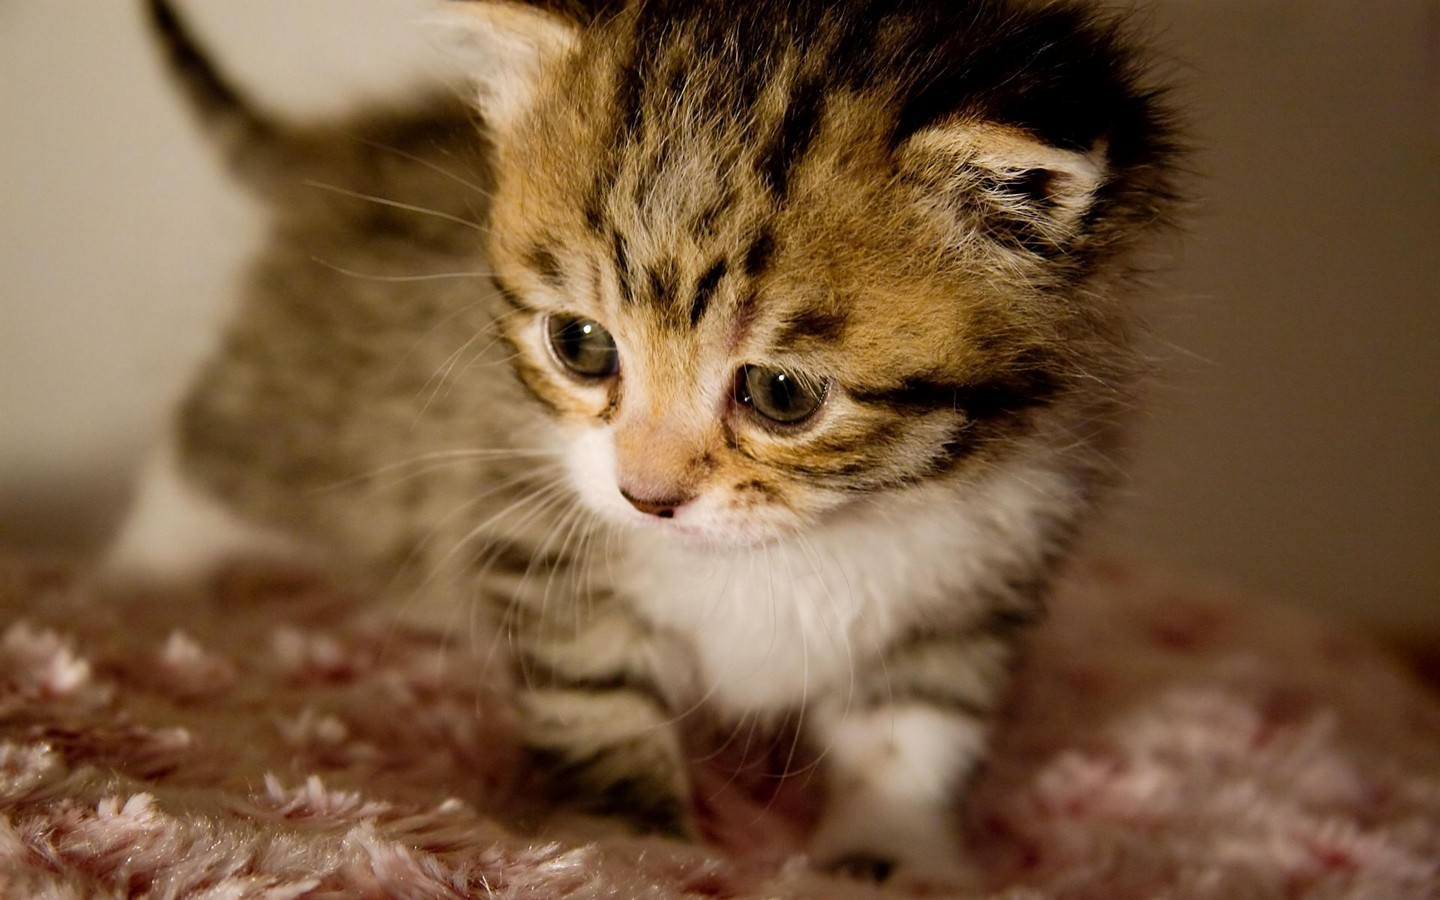 cute kitten pictures with captions